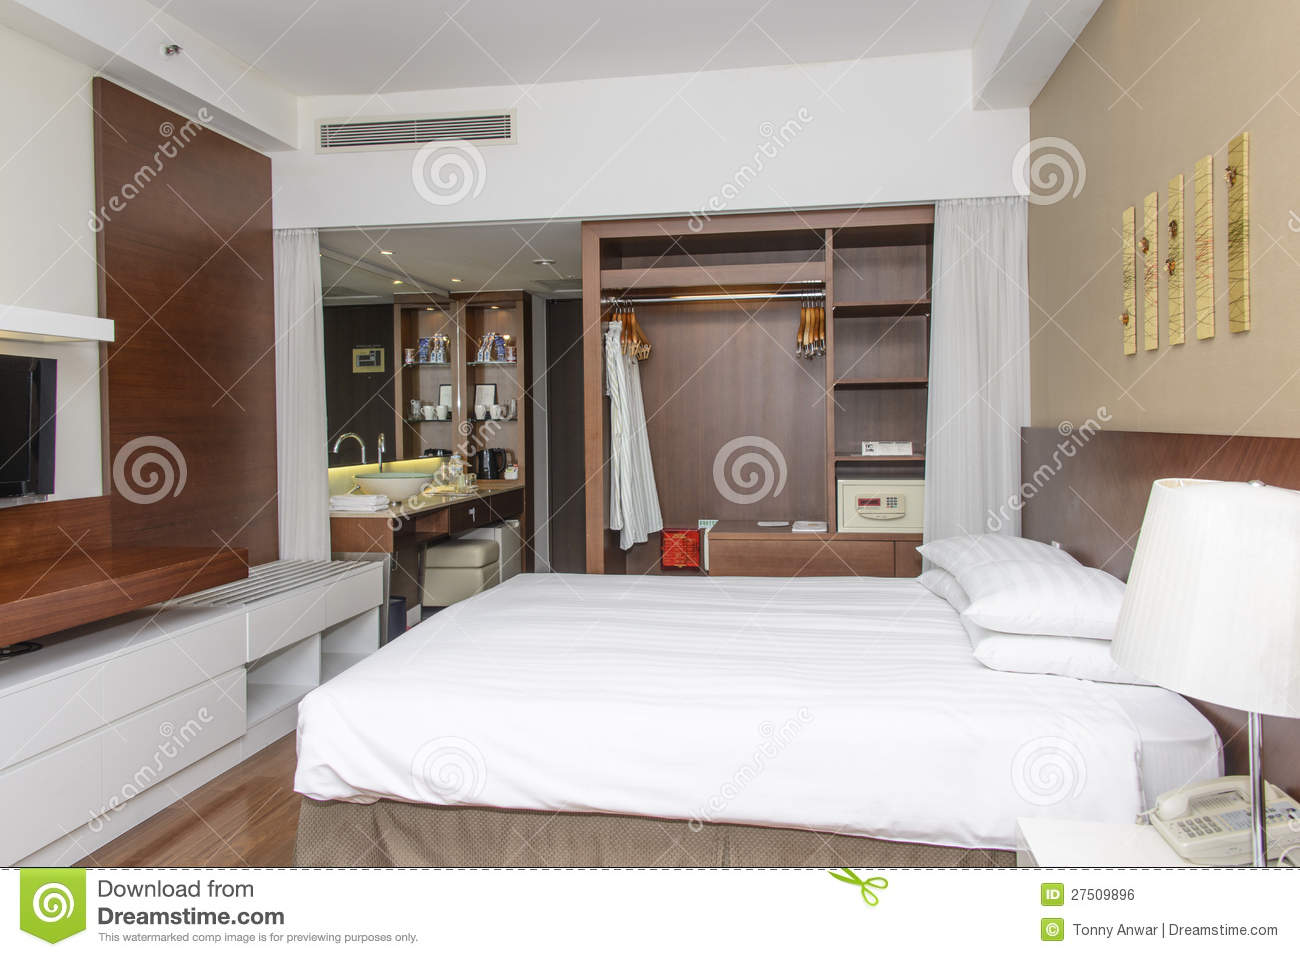 Luxurious Modern Hotel Room Stock Photo